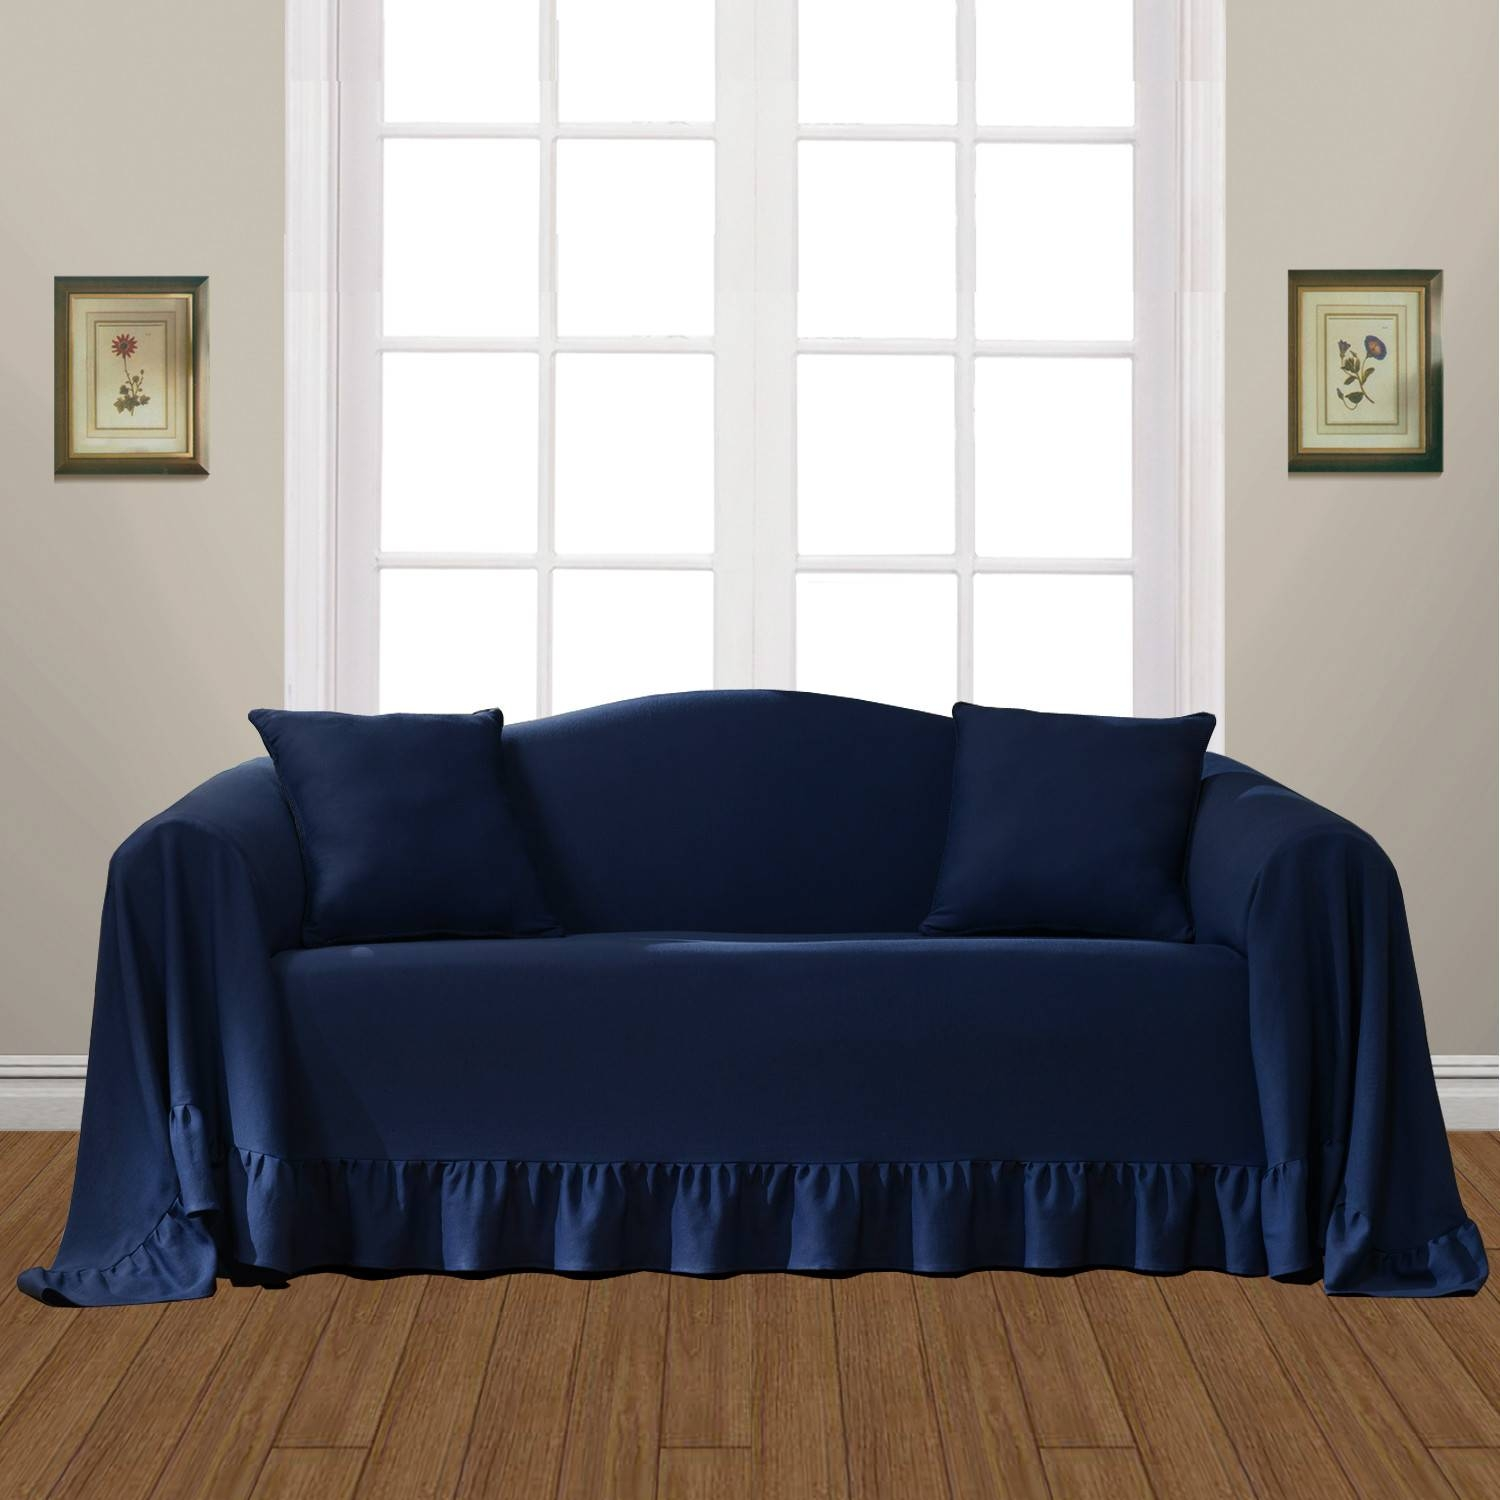 Furniture: Slipcovers Chairs | Sofa Armrest Covers | Recliner Intended For Navy Blue Slipcovers (Photo 6 of 15)